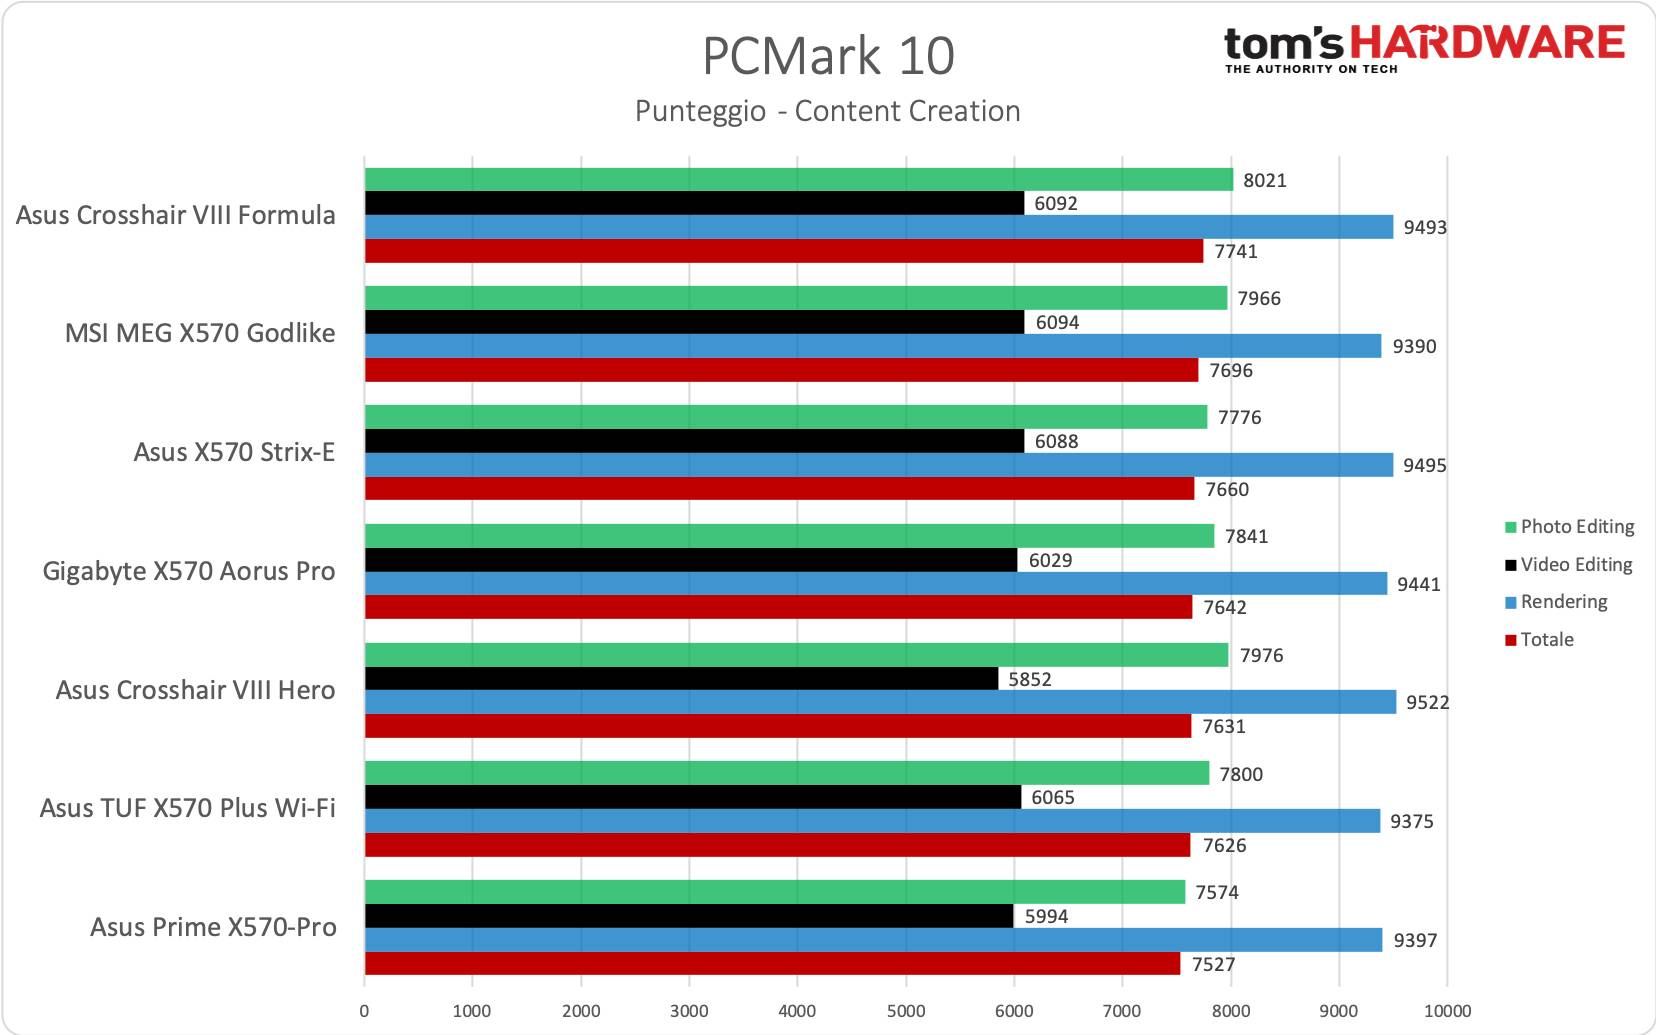 Asus TUF Gaming X570-Plus Wi-Fi - PCMark 10 Content Creation